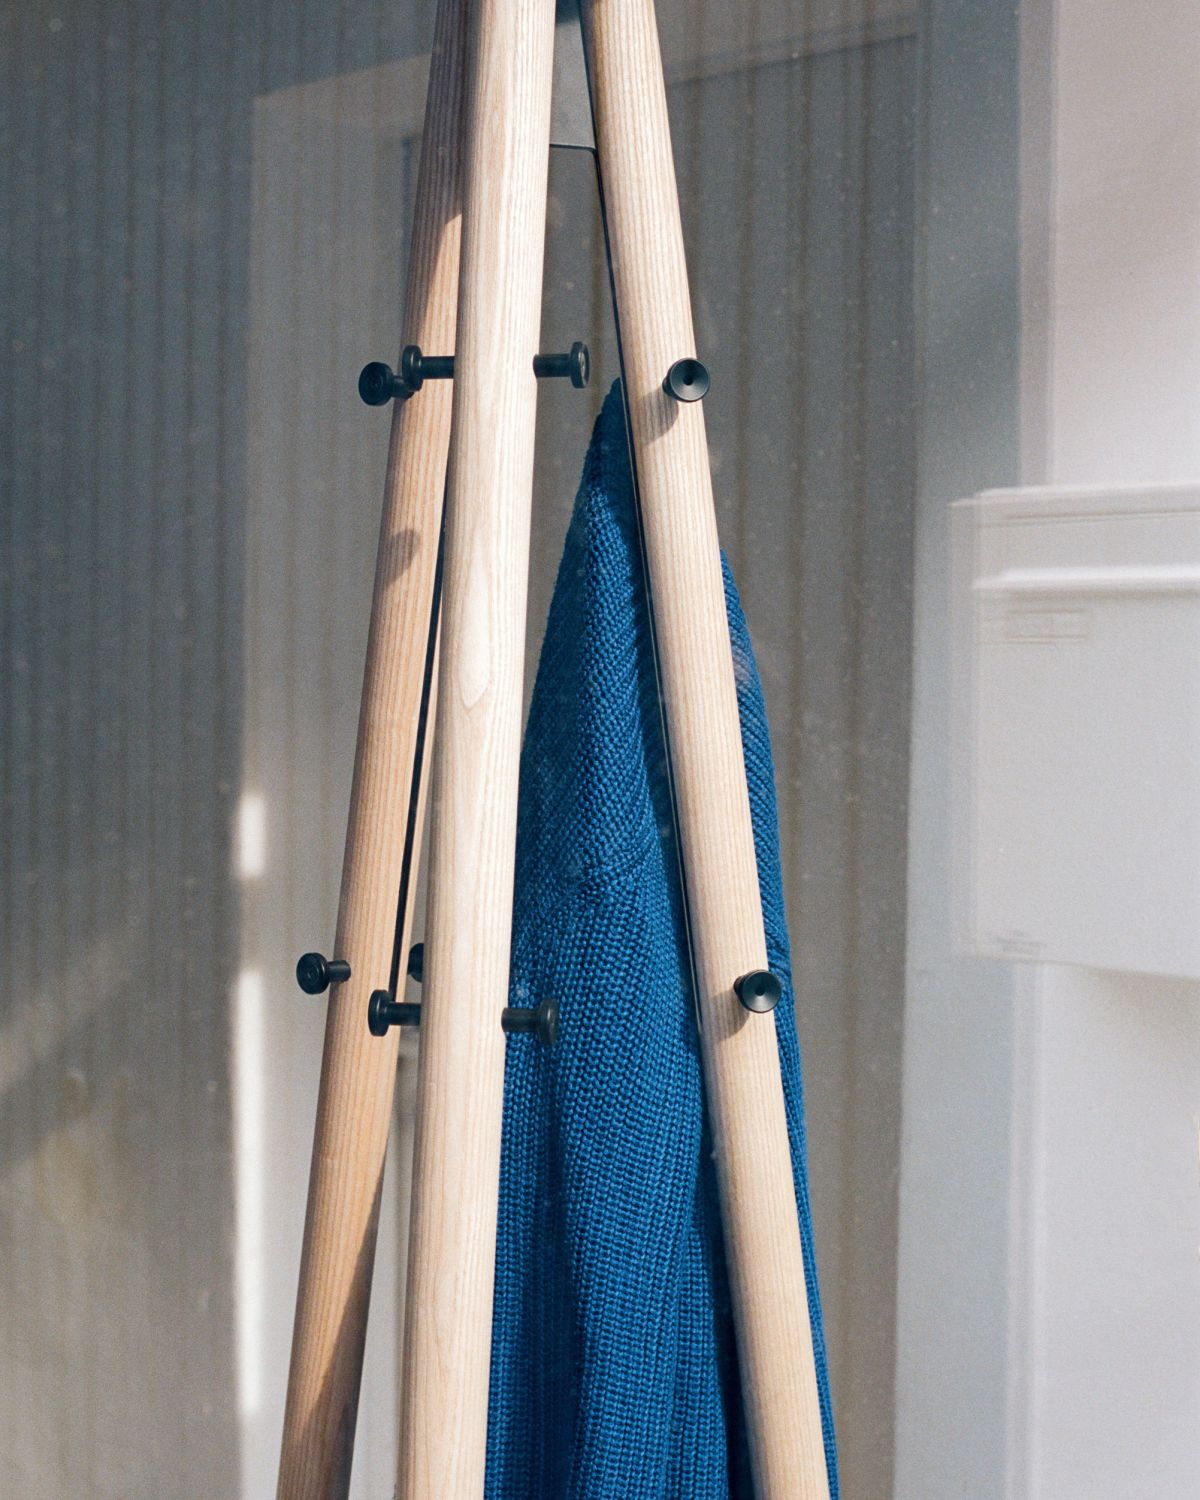 Kiila_coat_stand_clear_lacquer_black_pegs_2